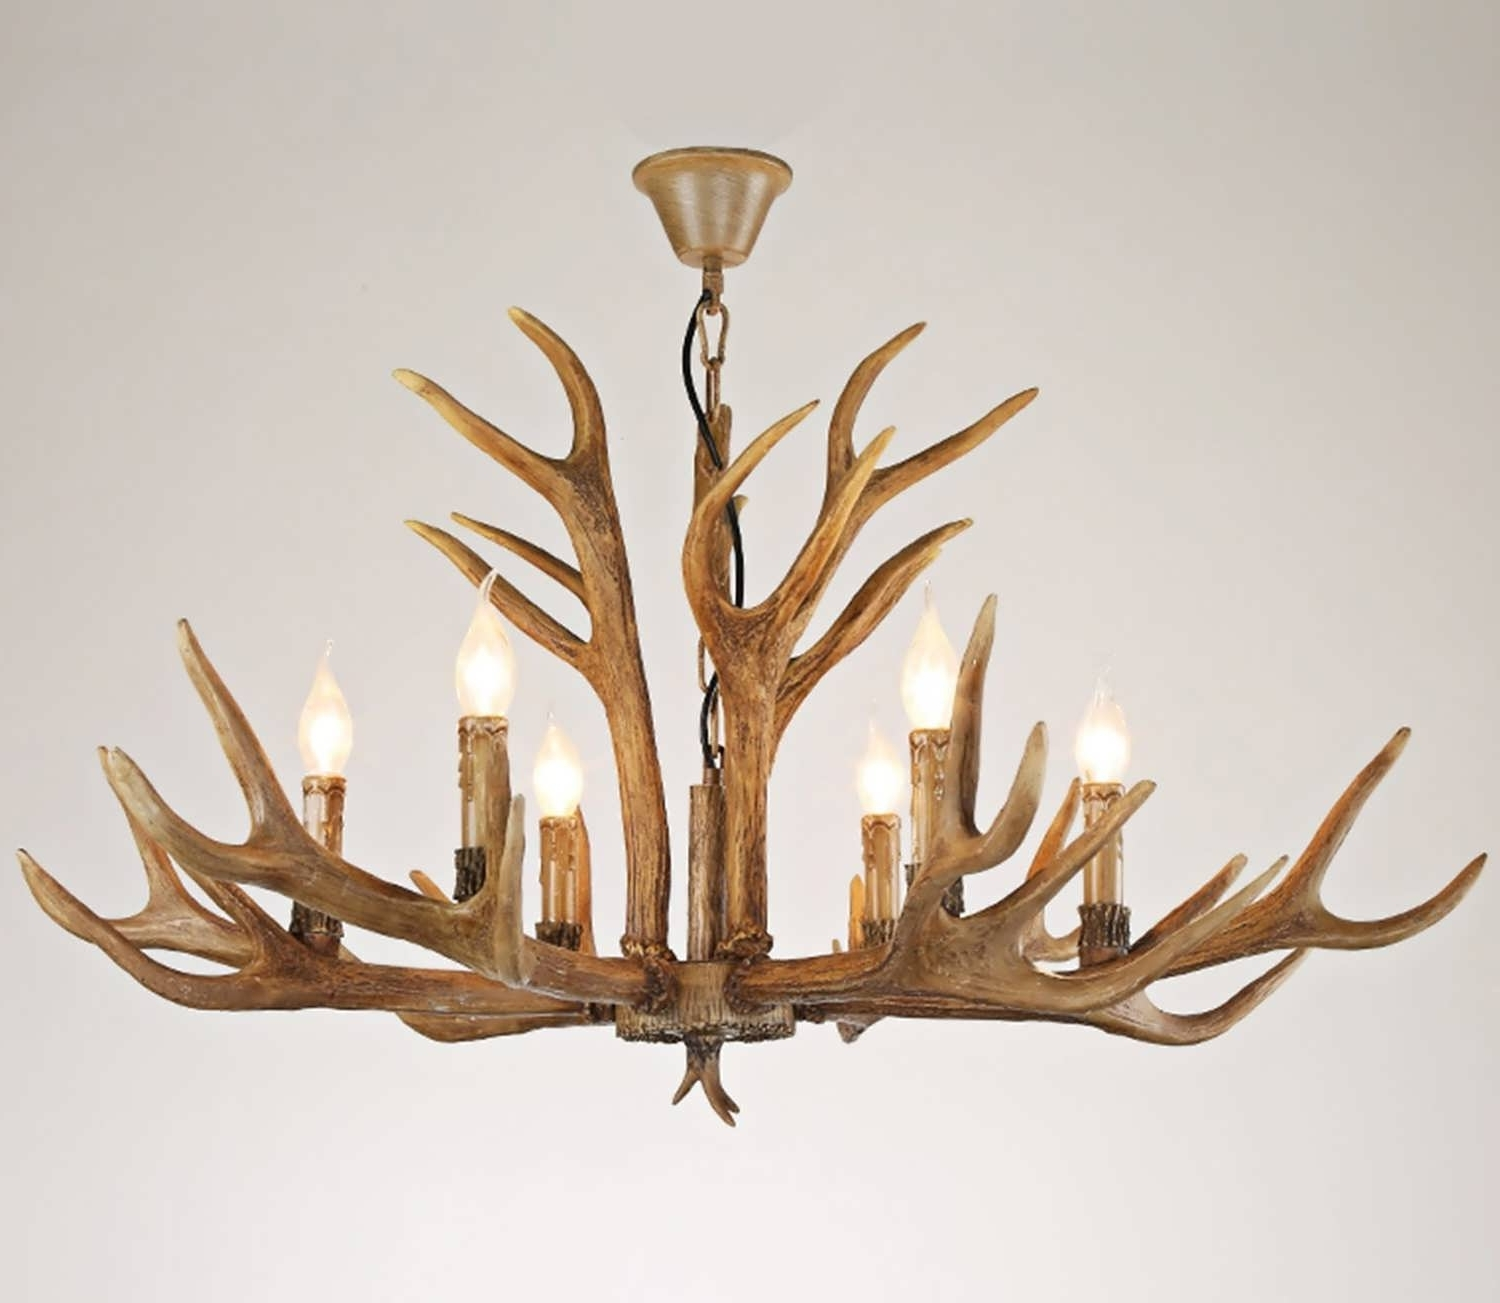 Stag Horn Chandelier Throughout Most Up To Date Chandelier : Antler Light Fitting Rustic Chandeliers Outdoor Antler (View 10 of 15)